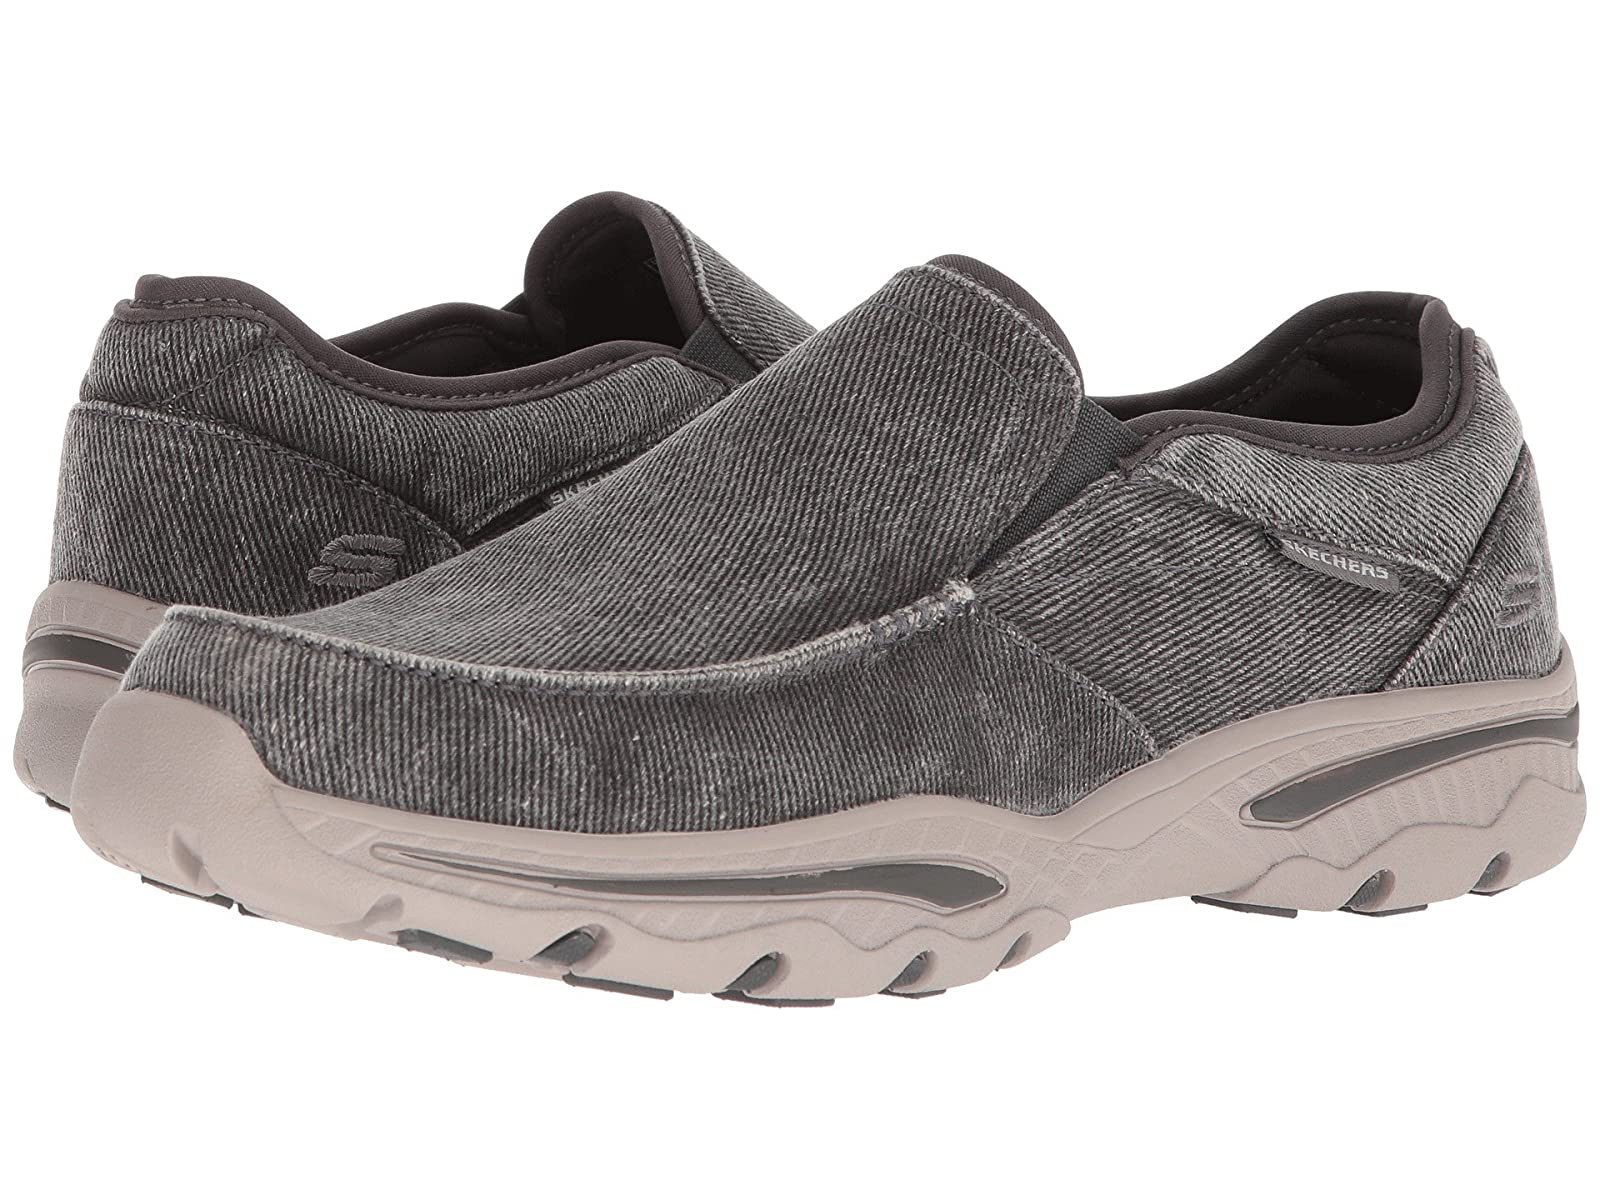 SKECHERS Relaxed Fit: Creston - MosecoAtmospheric grades have affordable shoes